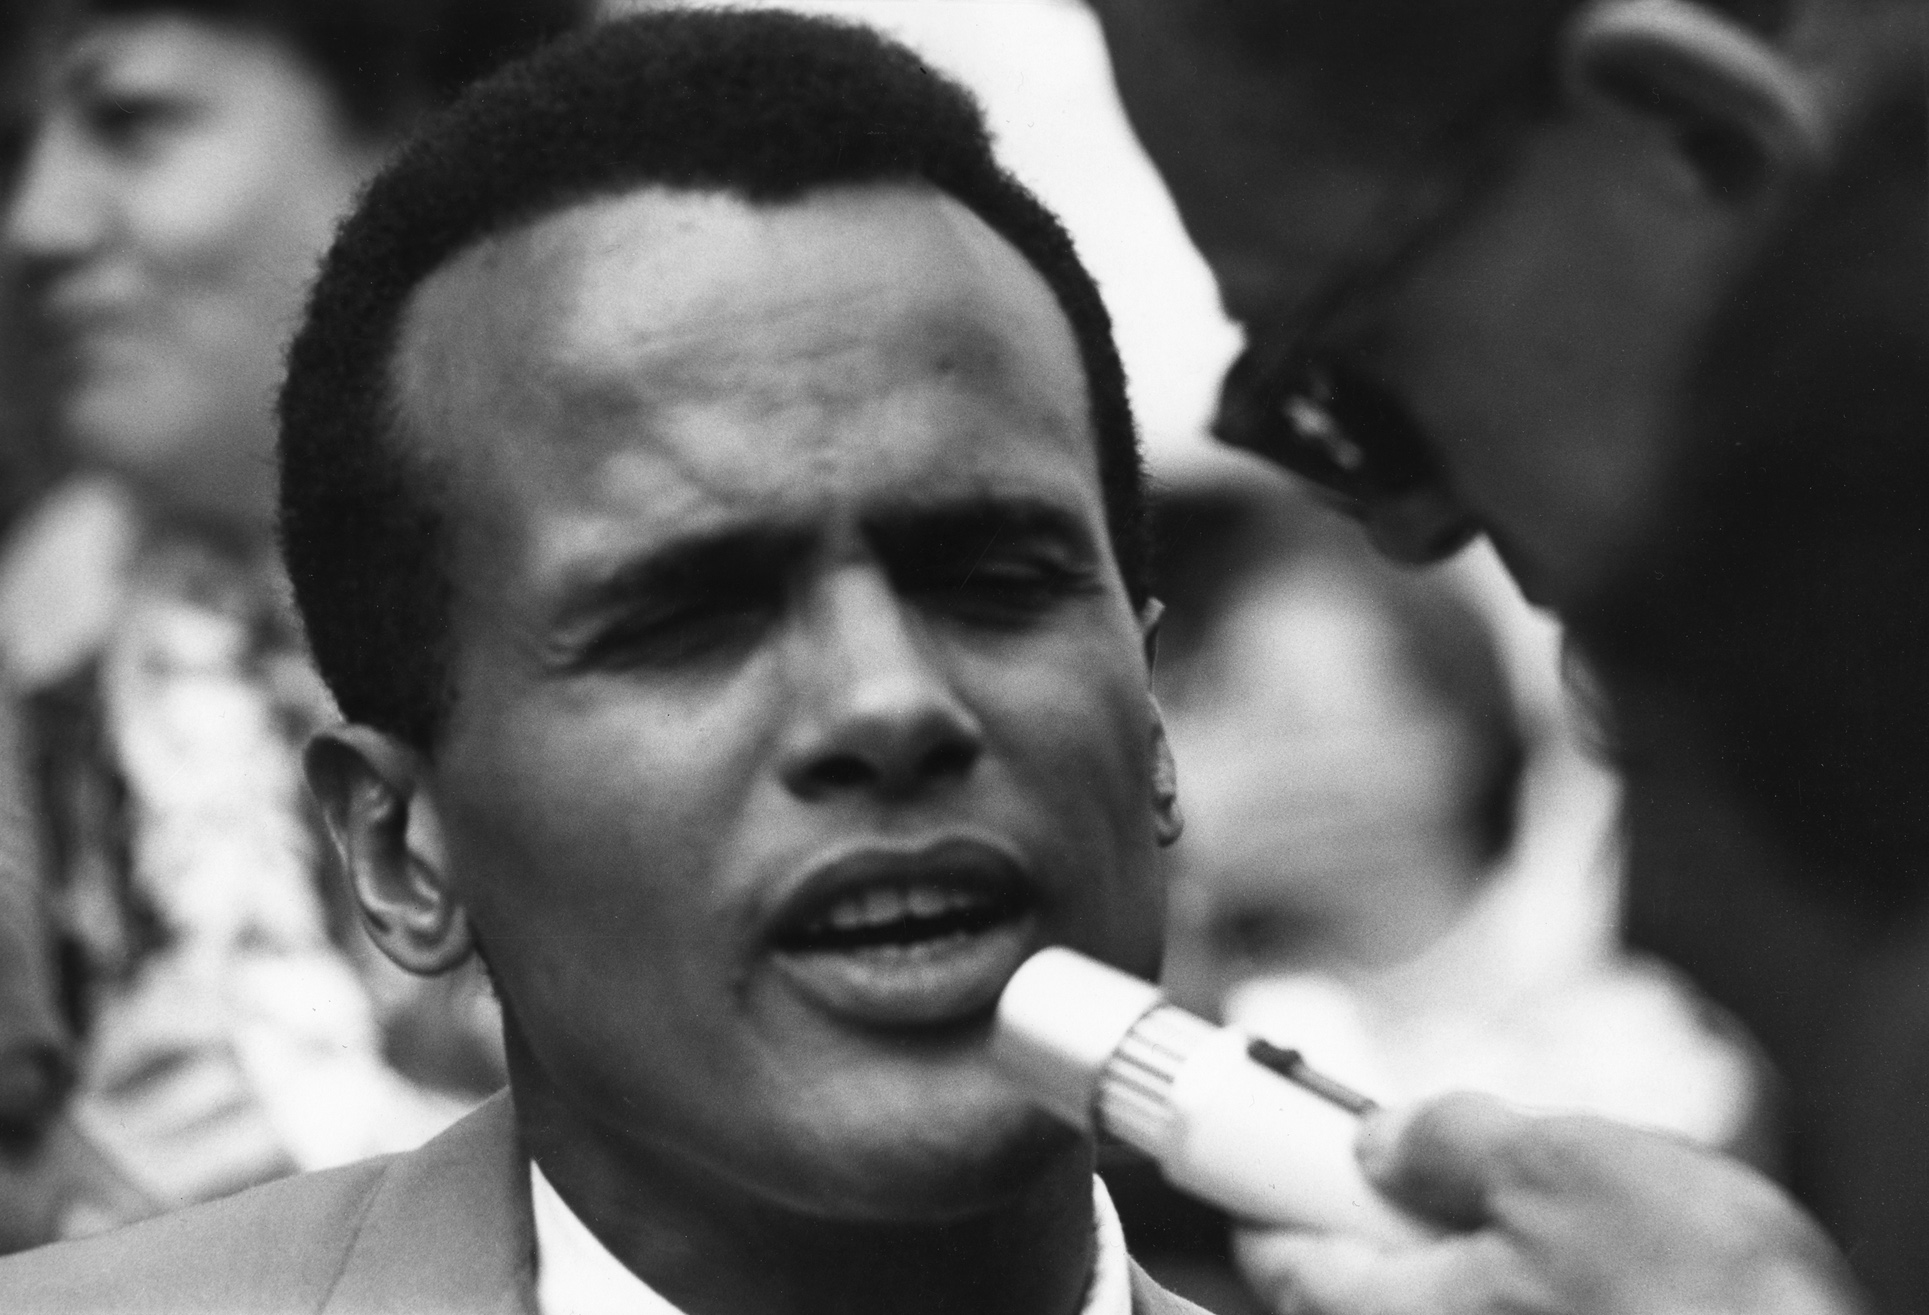 Belafonte speaking at the 1963 Civil Rights March on Washington